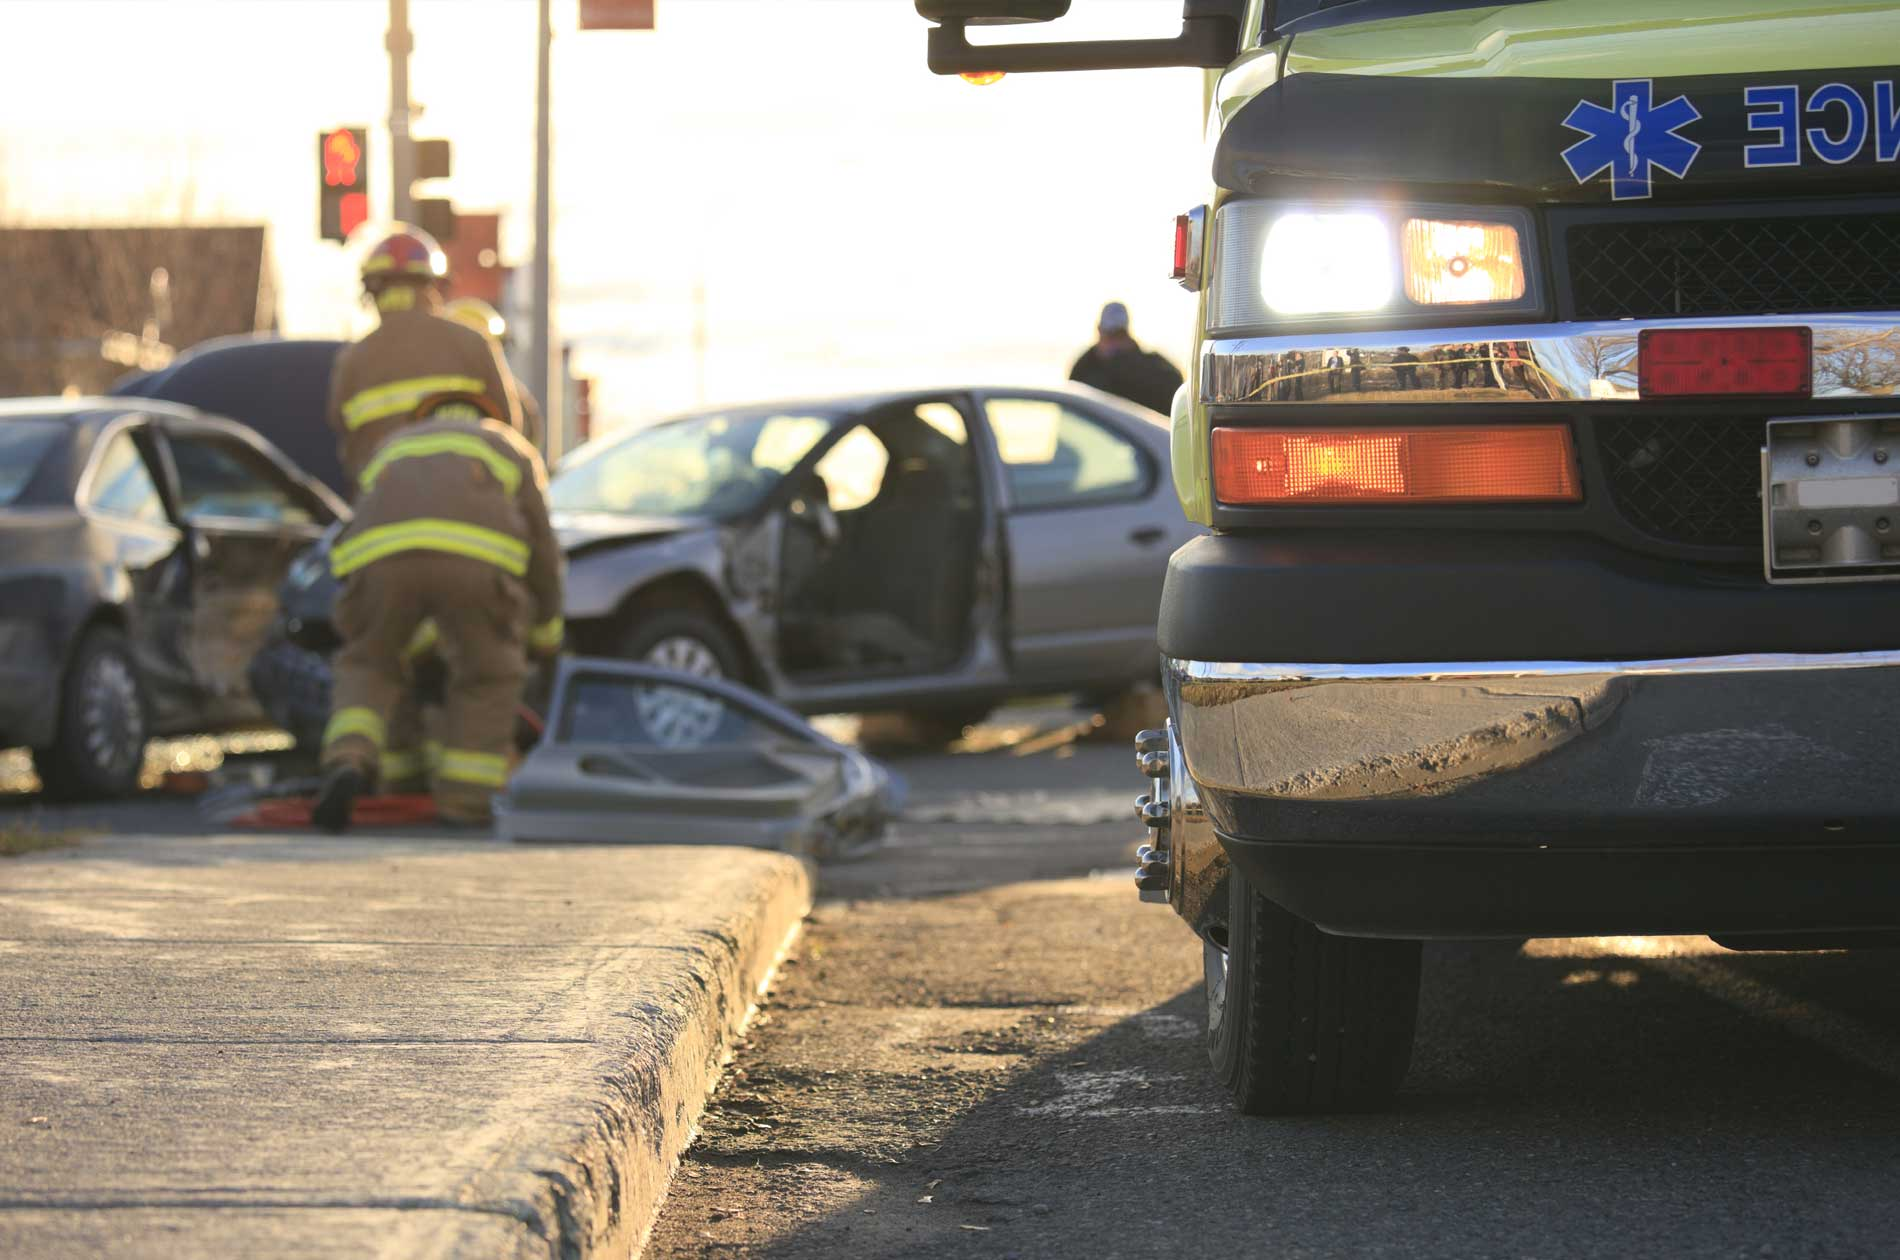 Emergency responders at the scene of an accident